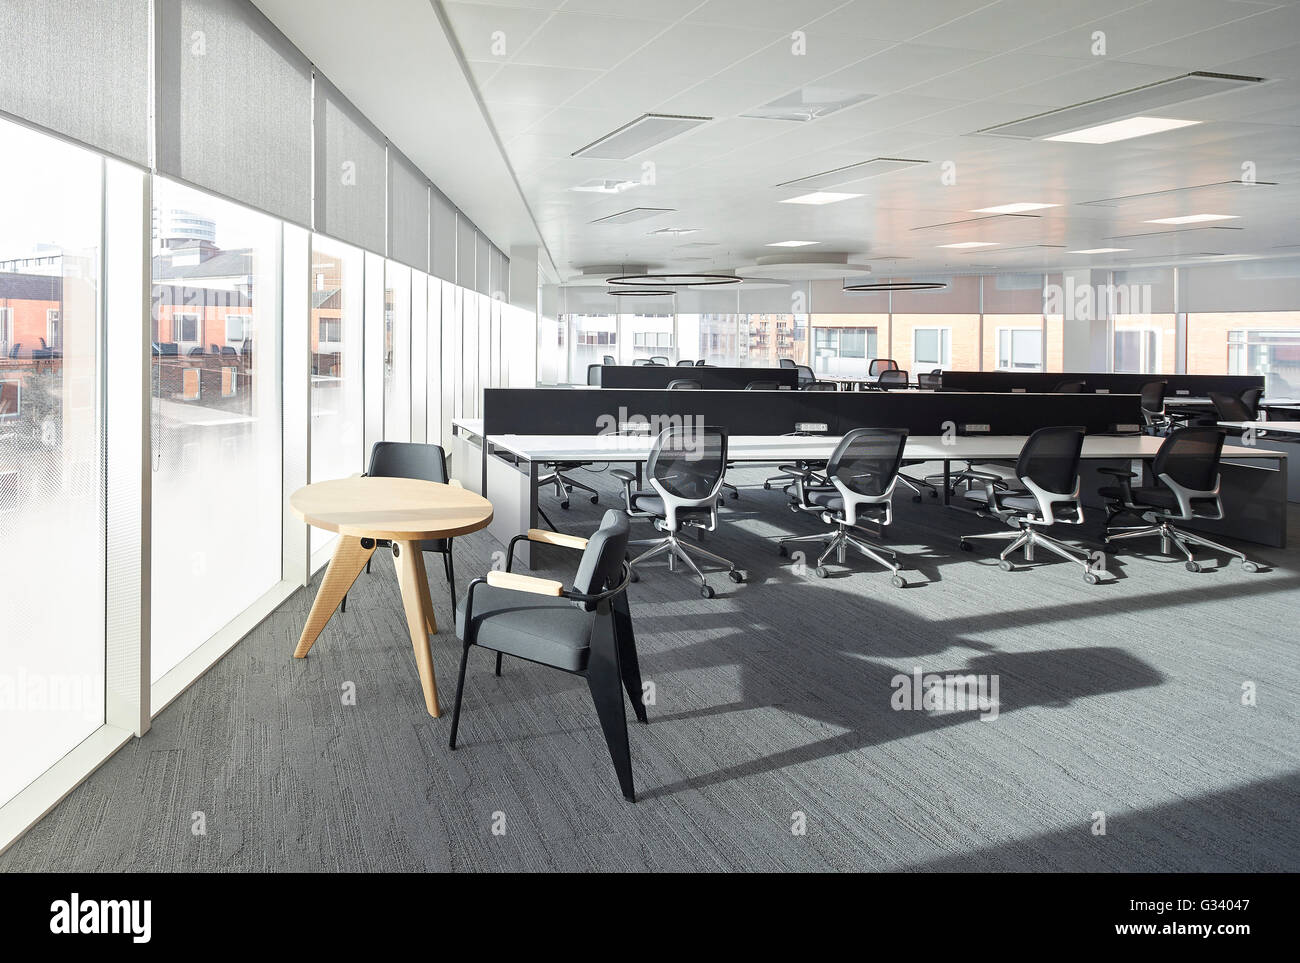 Empty Open Plan Office Interior KPMG Offices Leeds United Kingdom Architect Sheppard Robson 2015